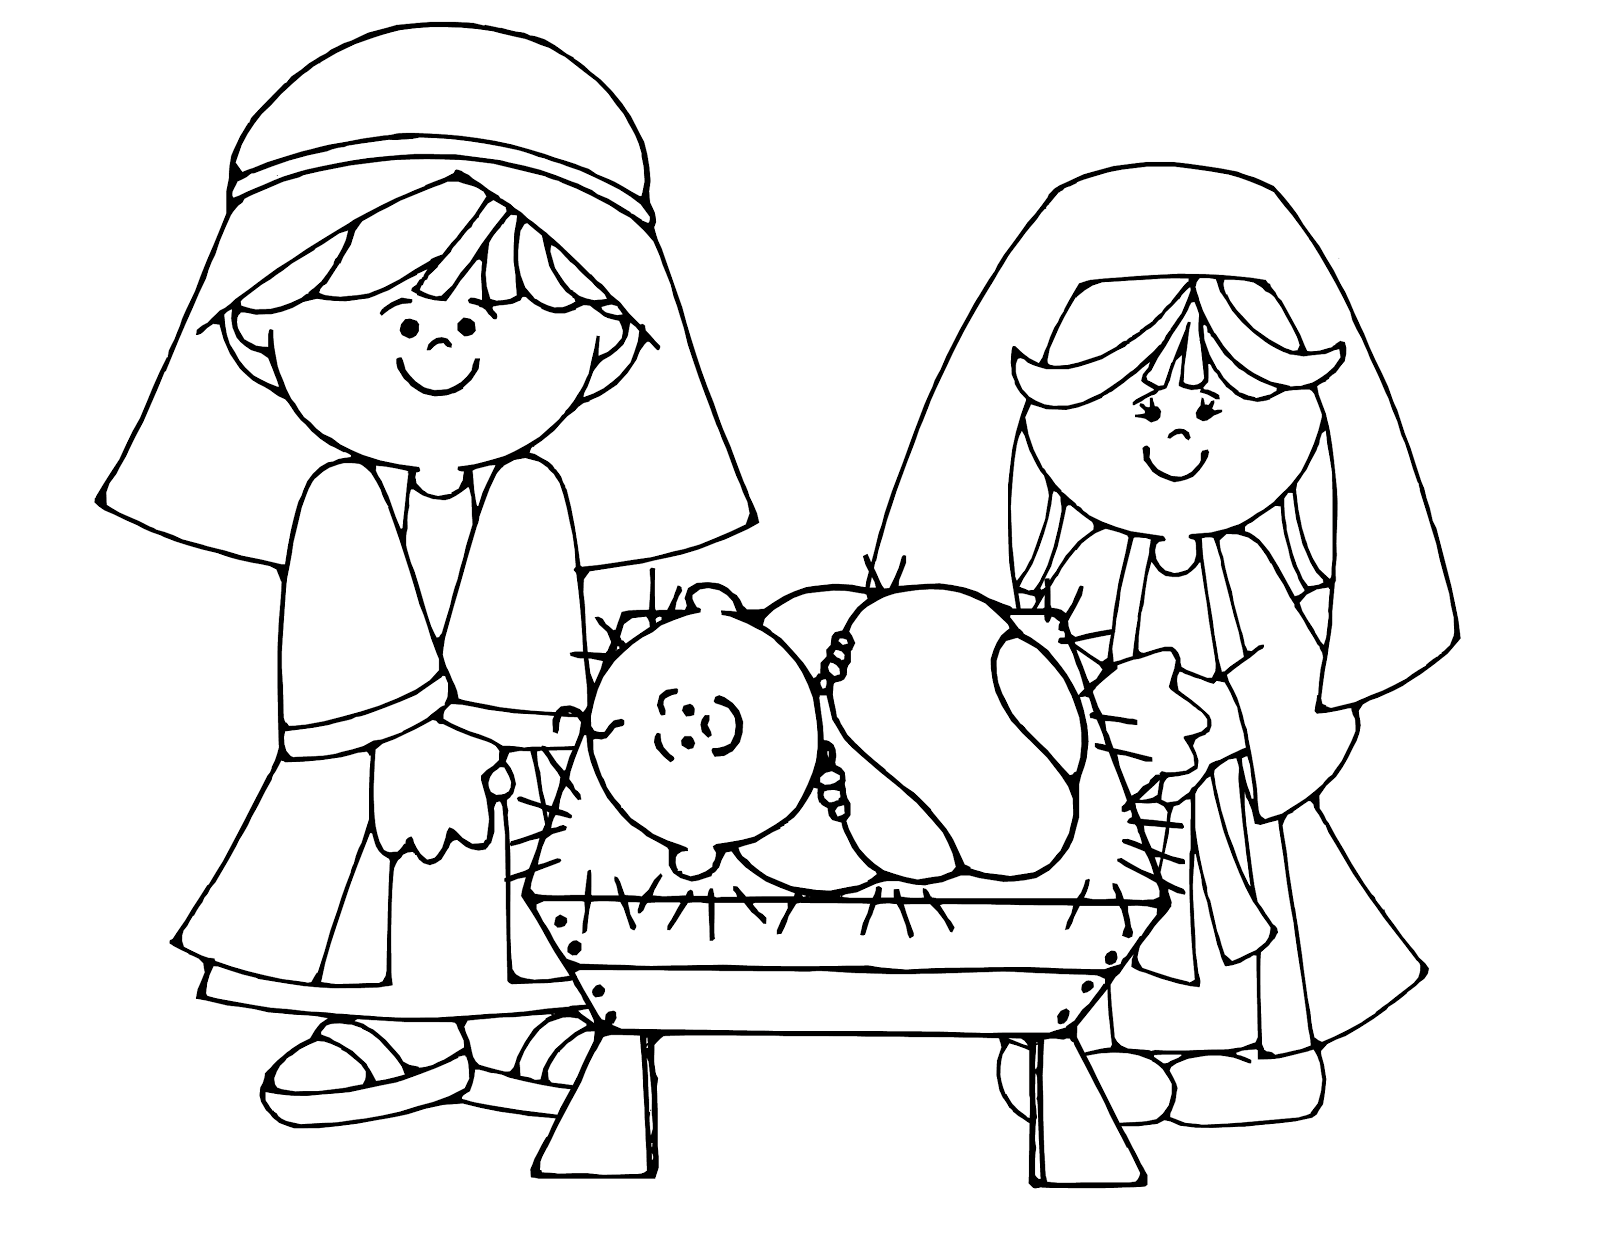 simple nativity scene colouring page | kids crafts | Pinterest ...